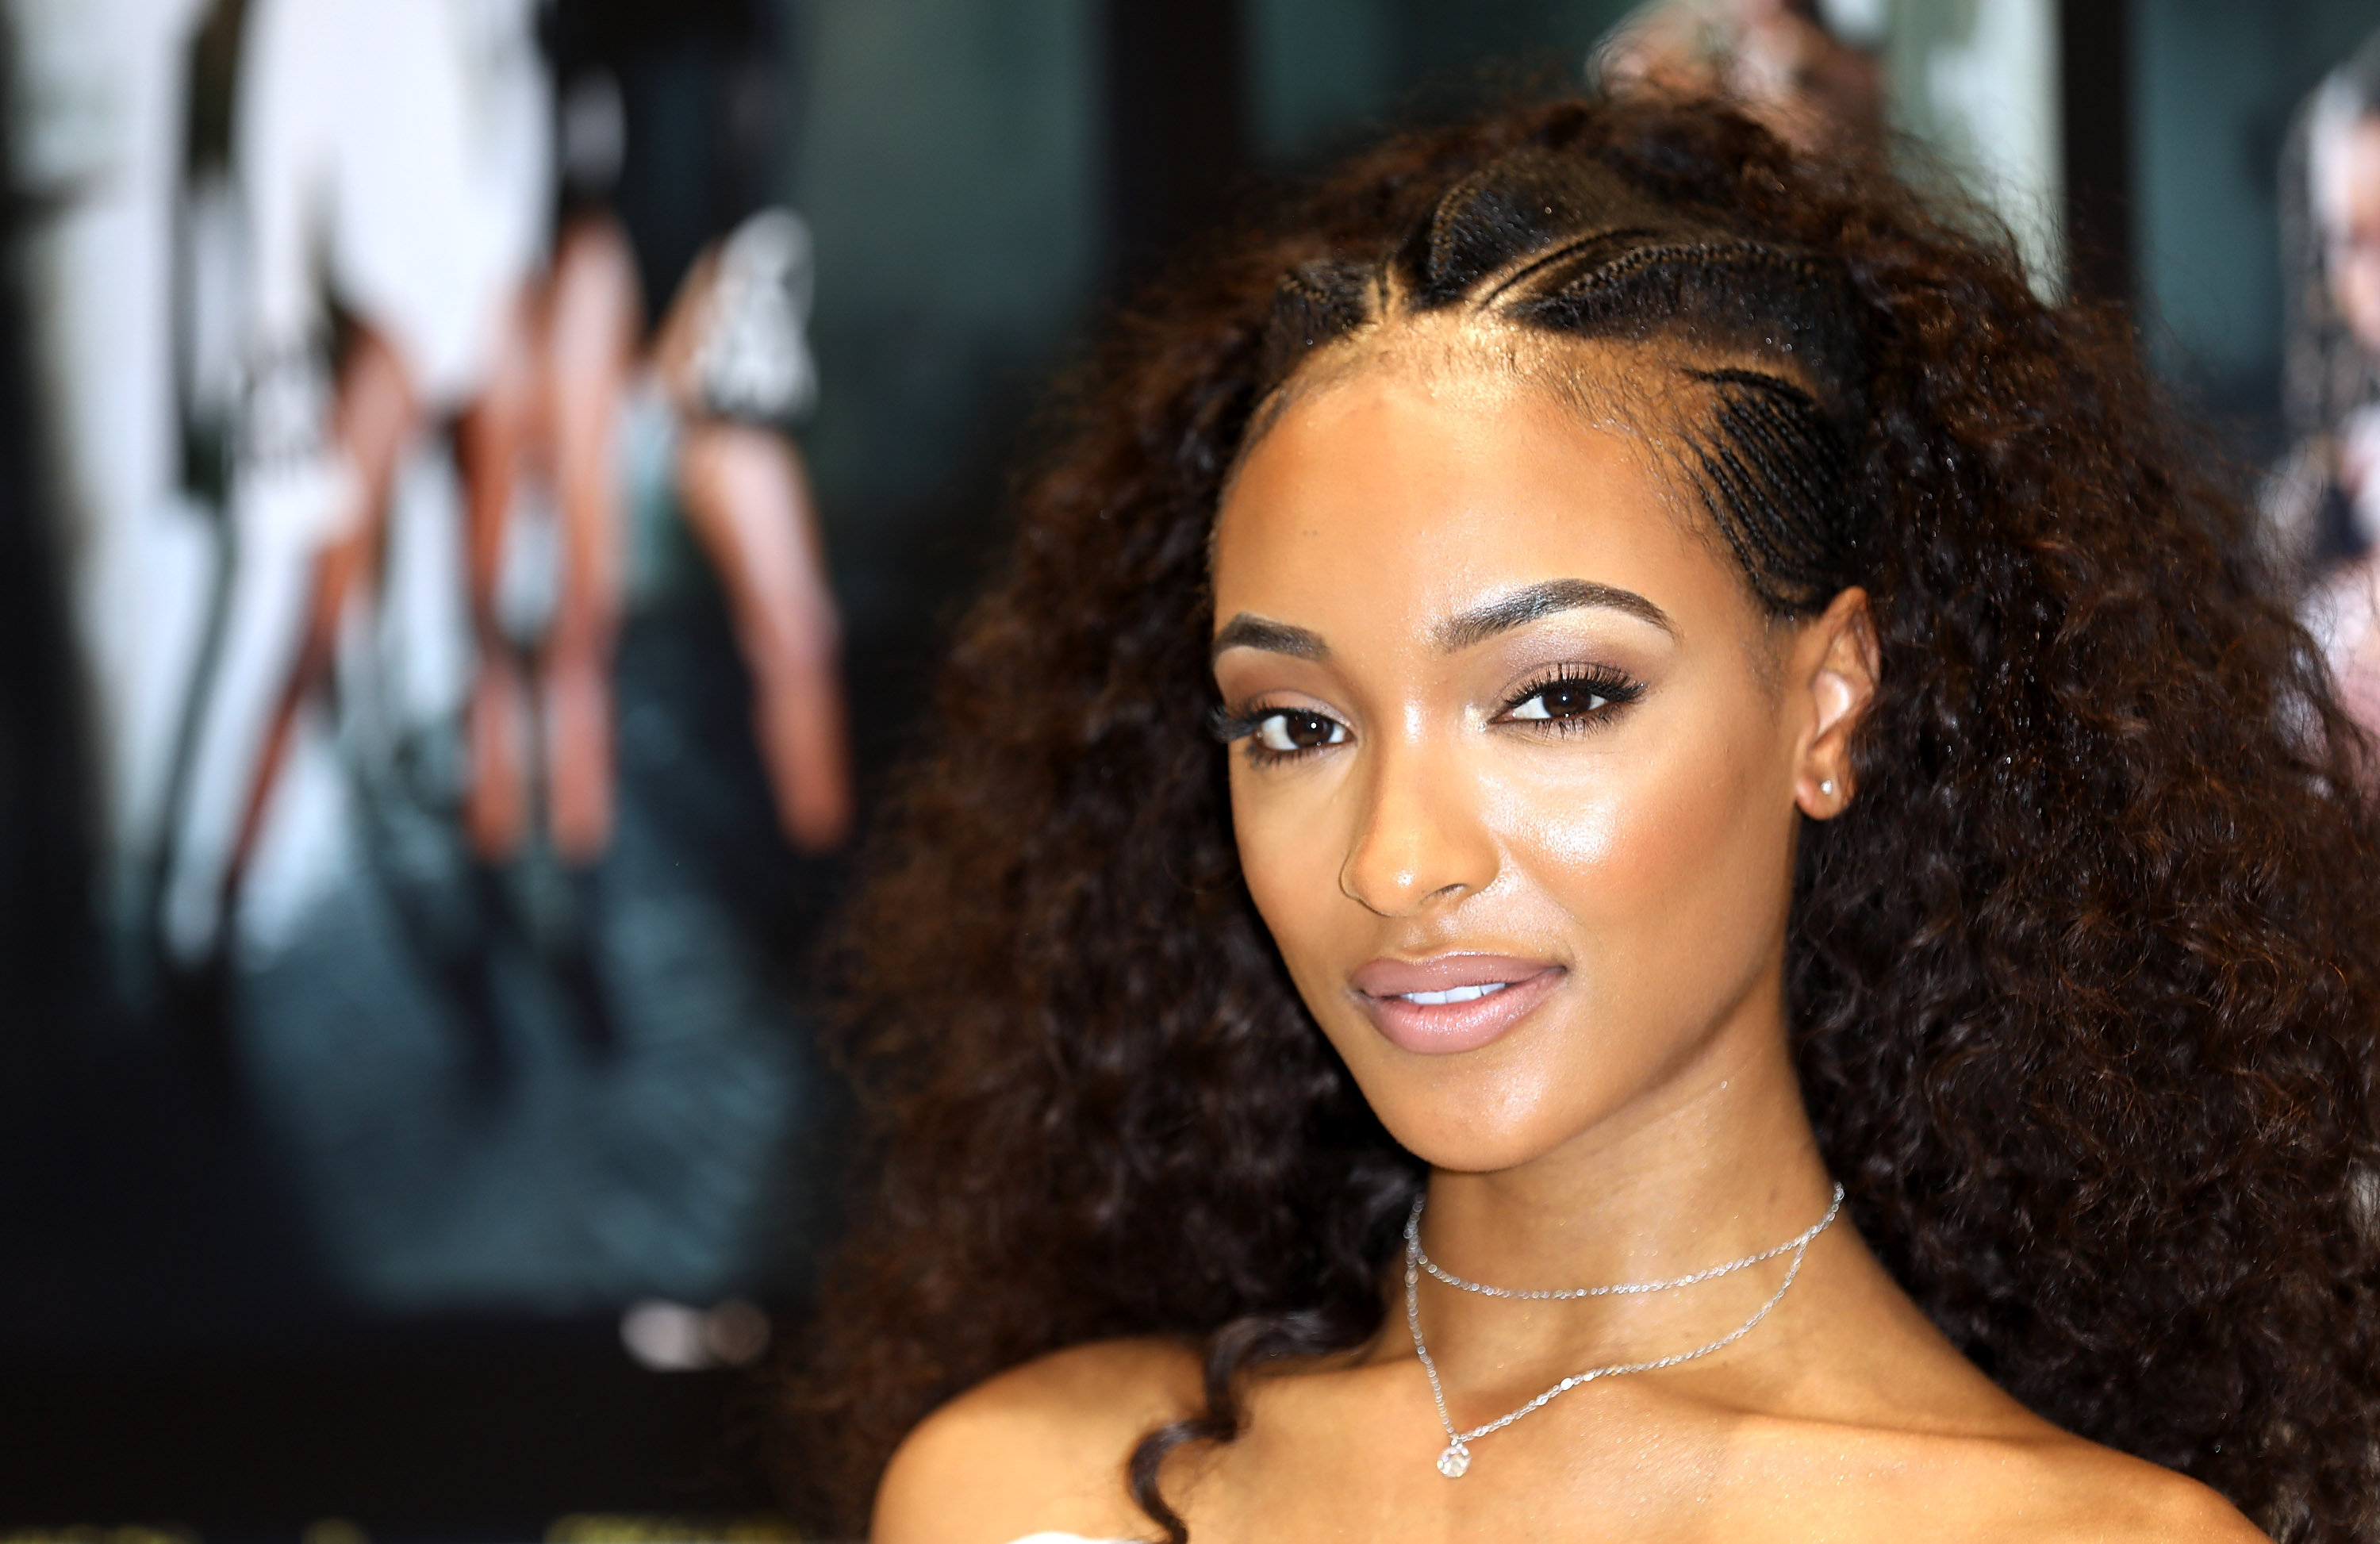 Jourdan Dunn Celebrates The Launch Of The Lon Dunn+ Missguided Collection At Missguided's Westfield Store